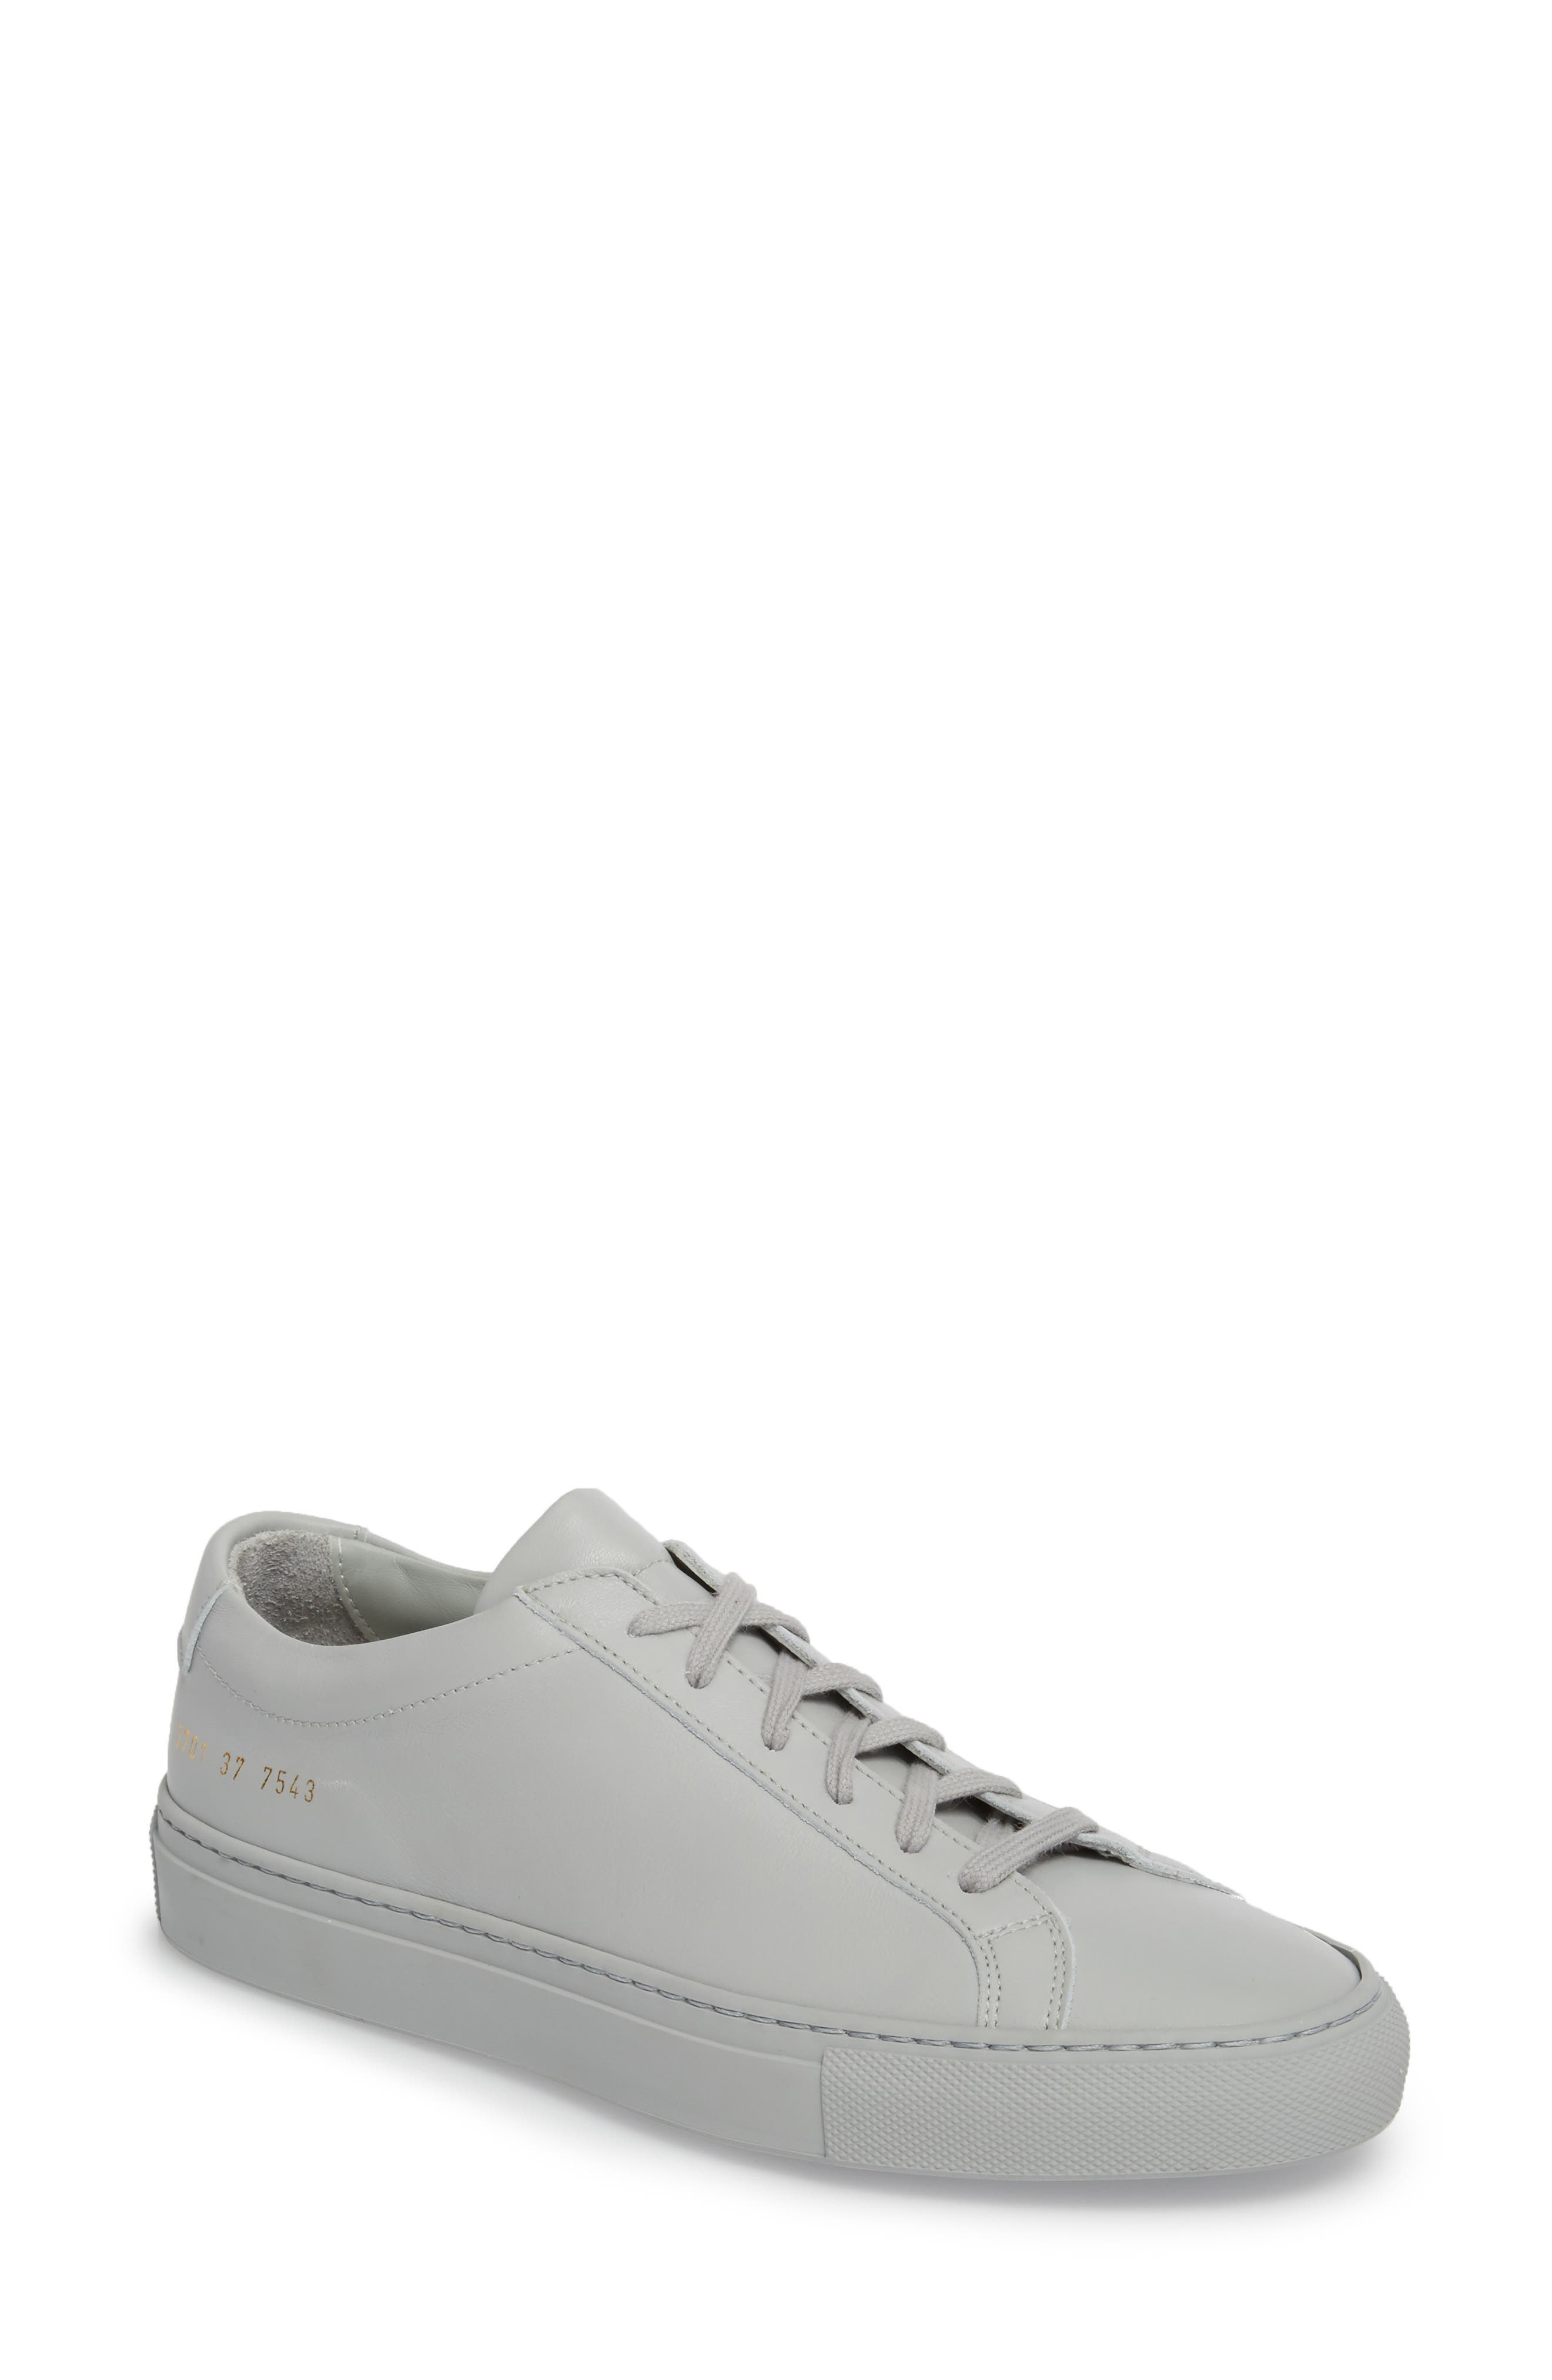 Women's Common Projects Shoes | Nordstrom